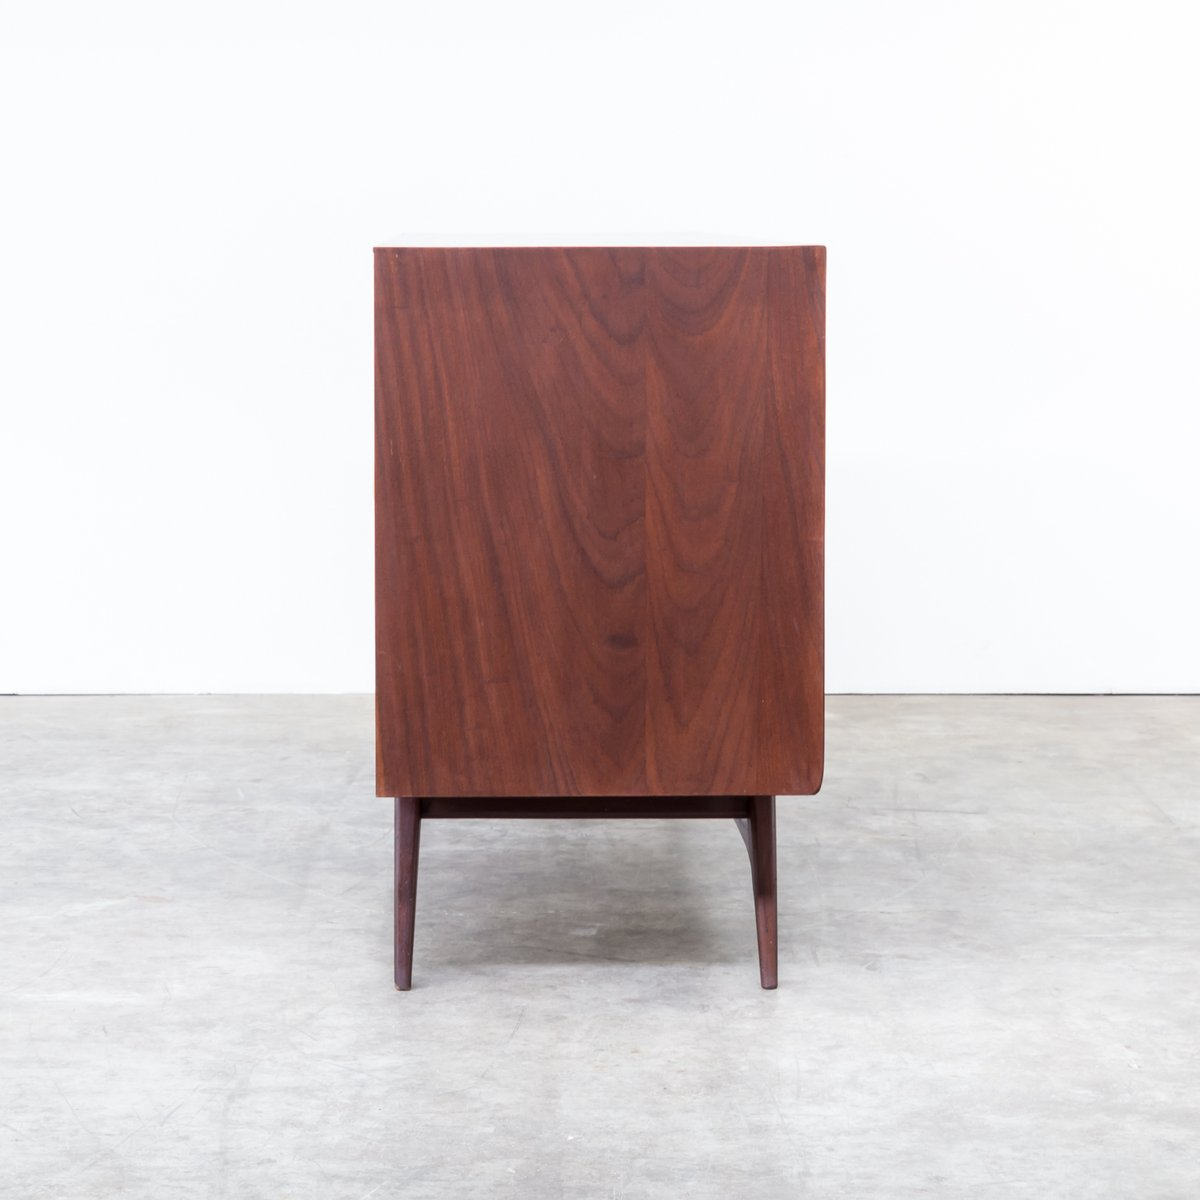 Teak sideboard by louis van teeffelen for w b 1960s for for Sideboard x7